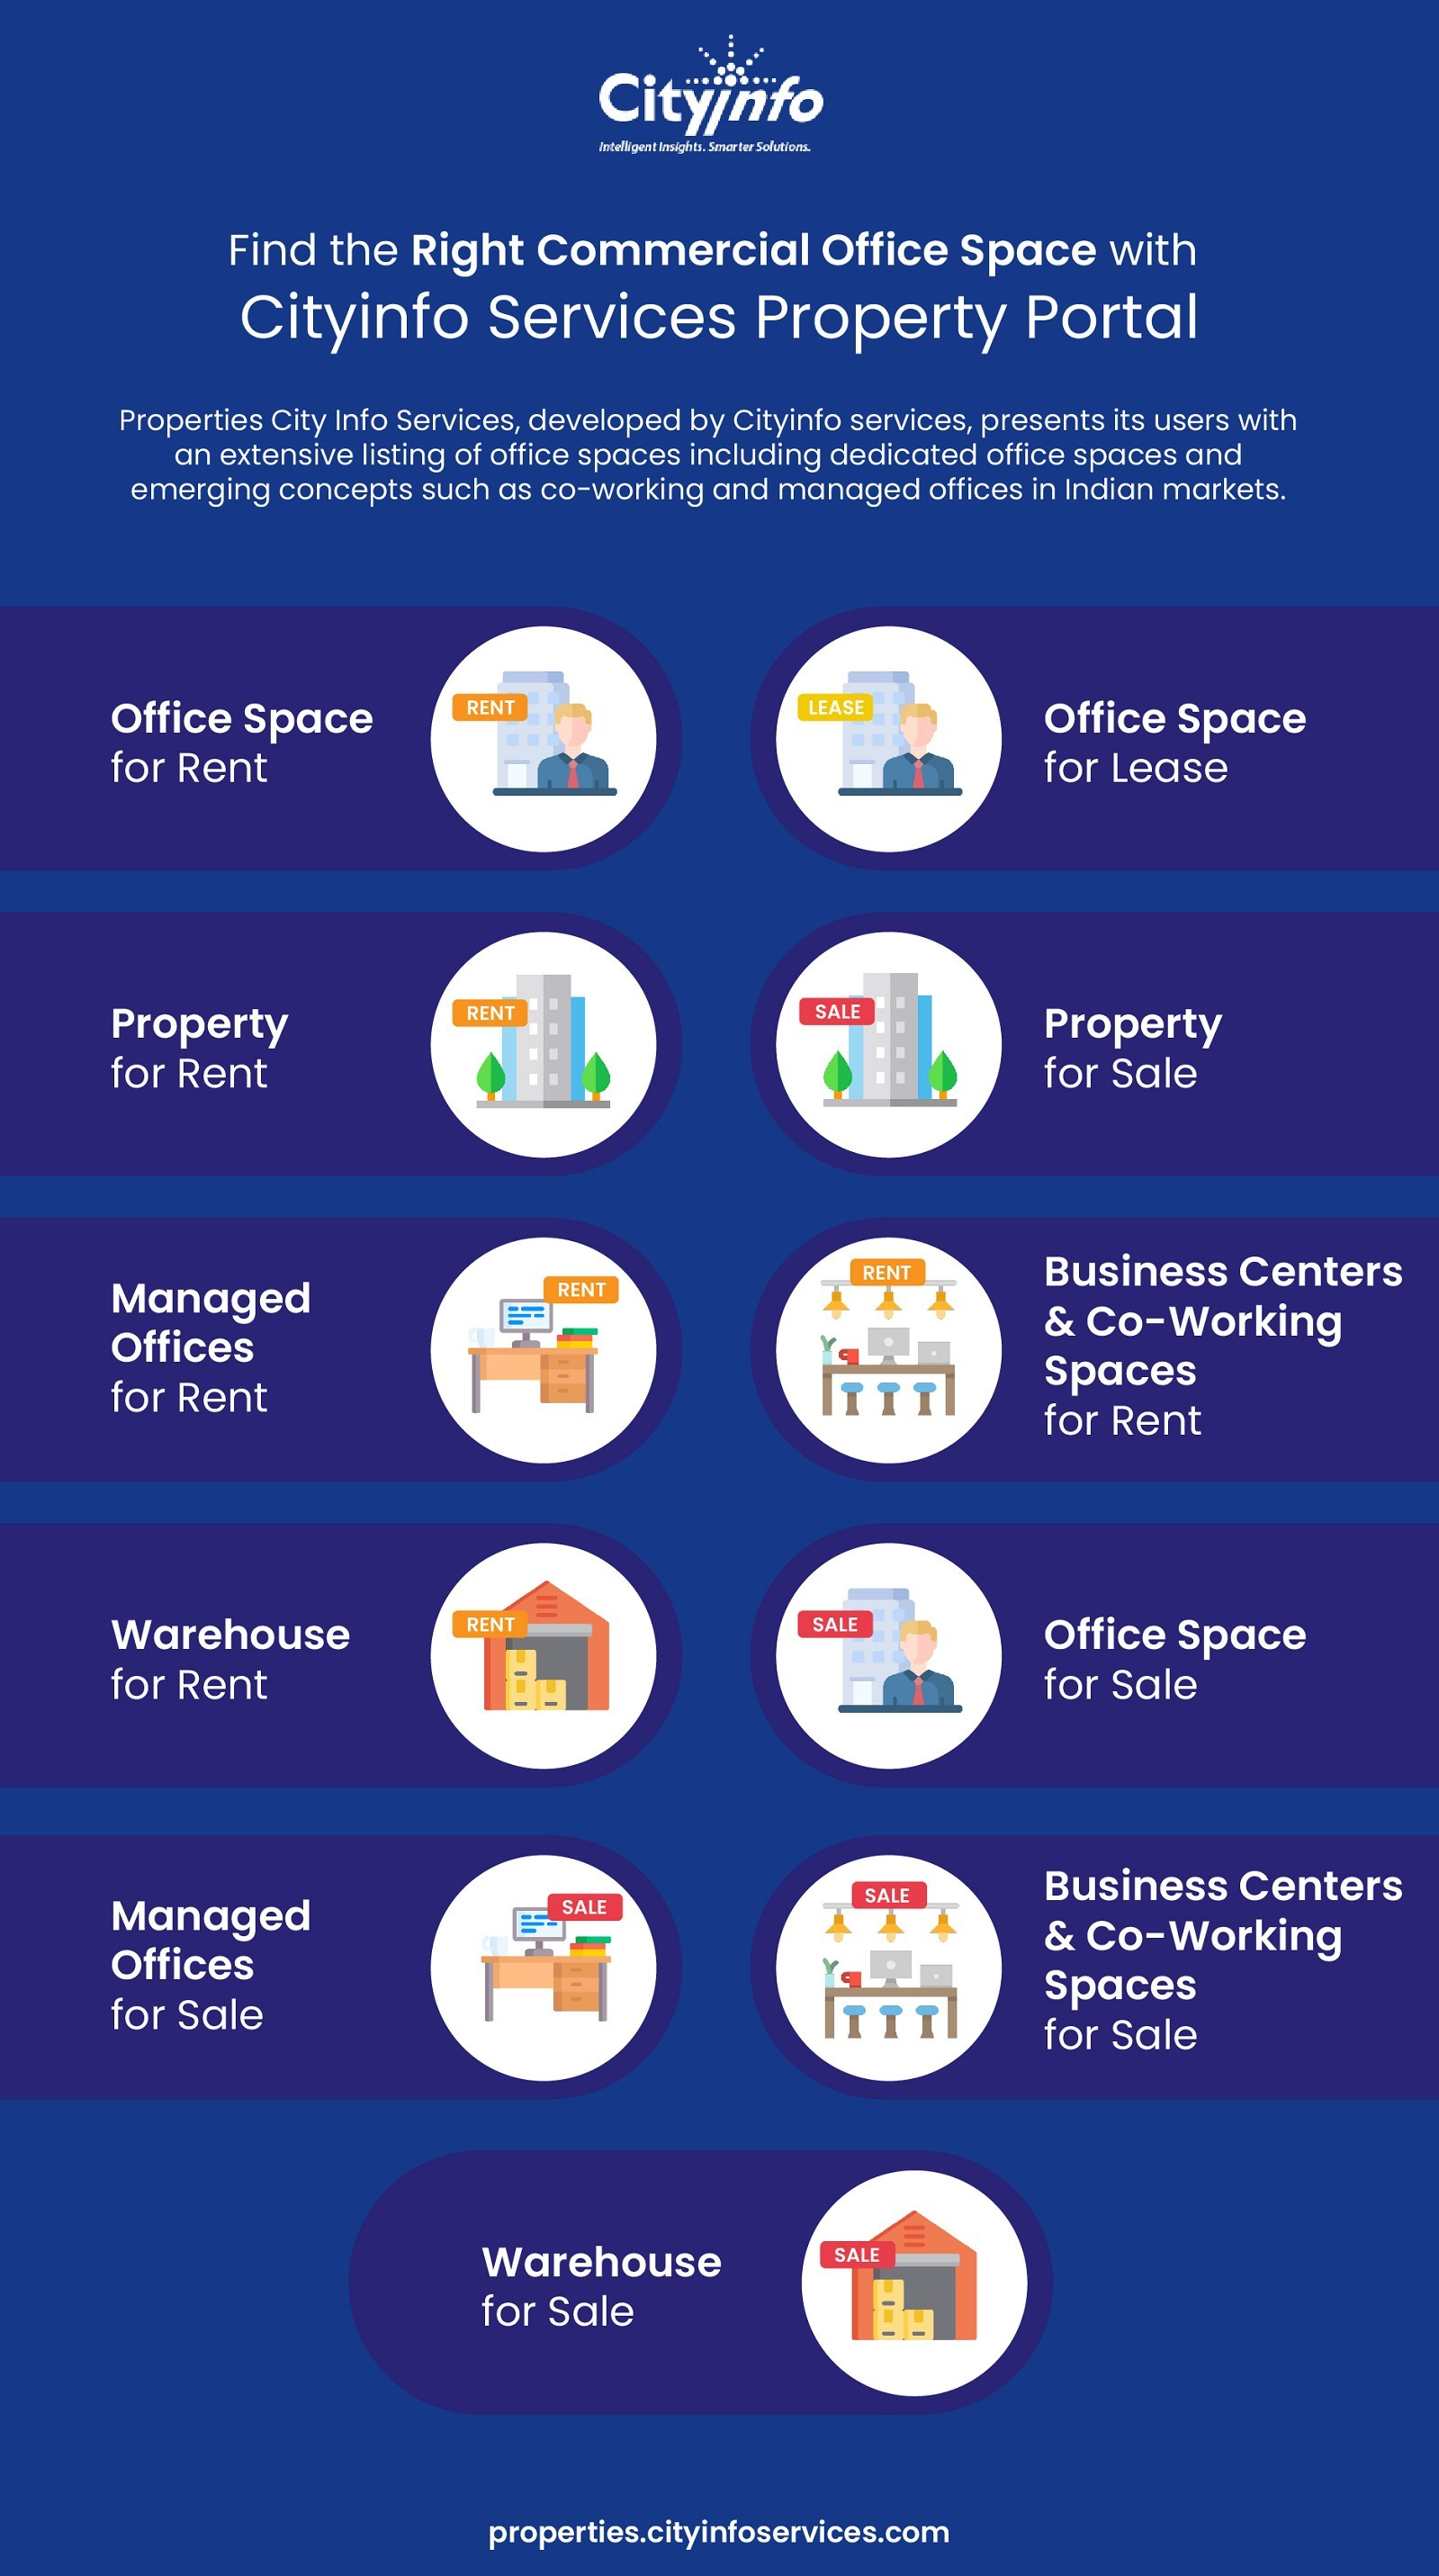 Office Space for Rent in Chennai | Cityinfo Services Propety Portal